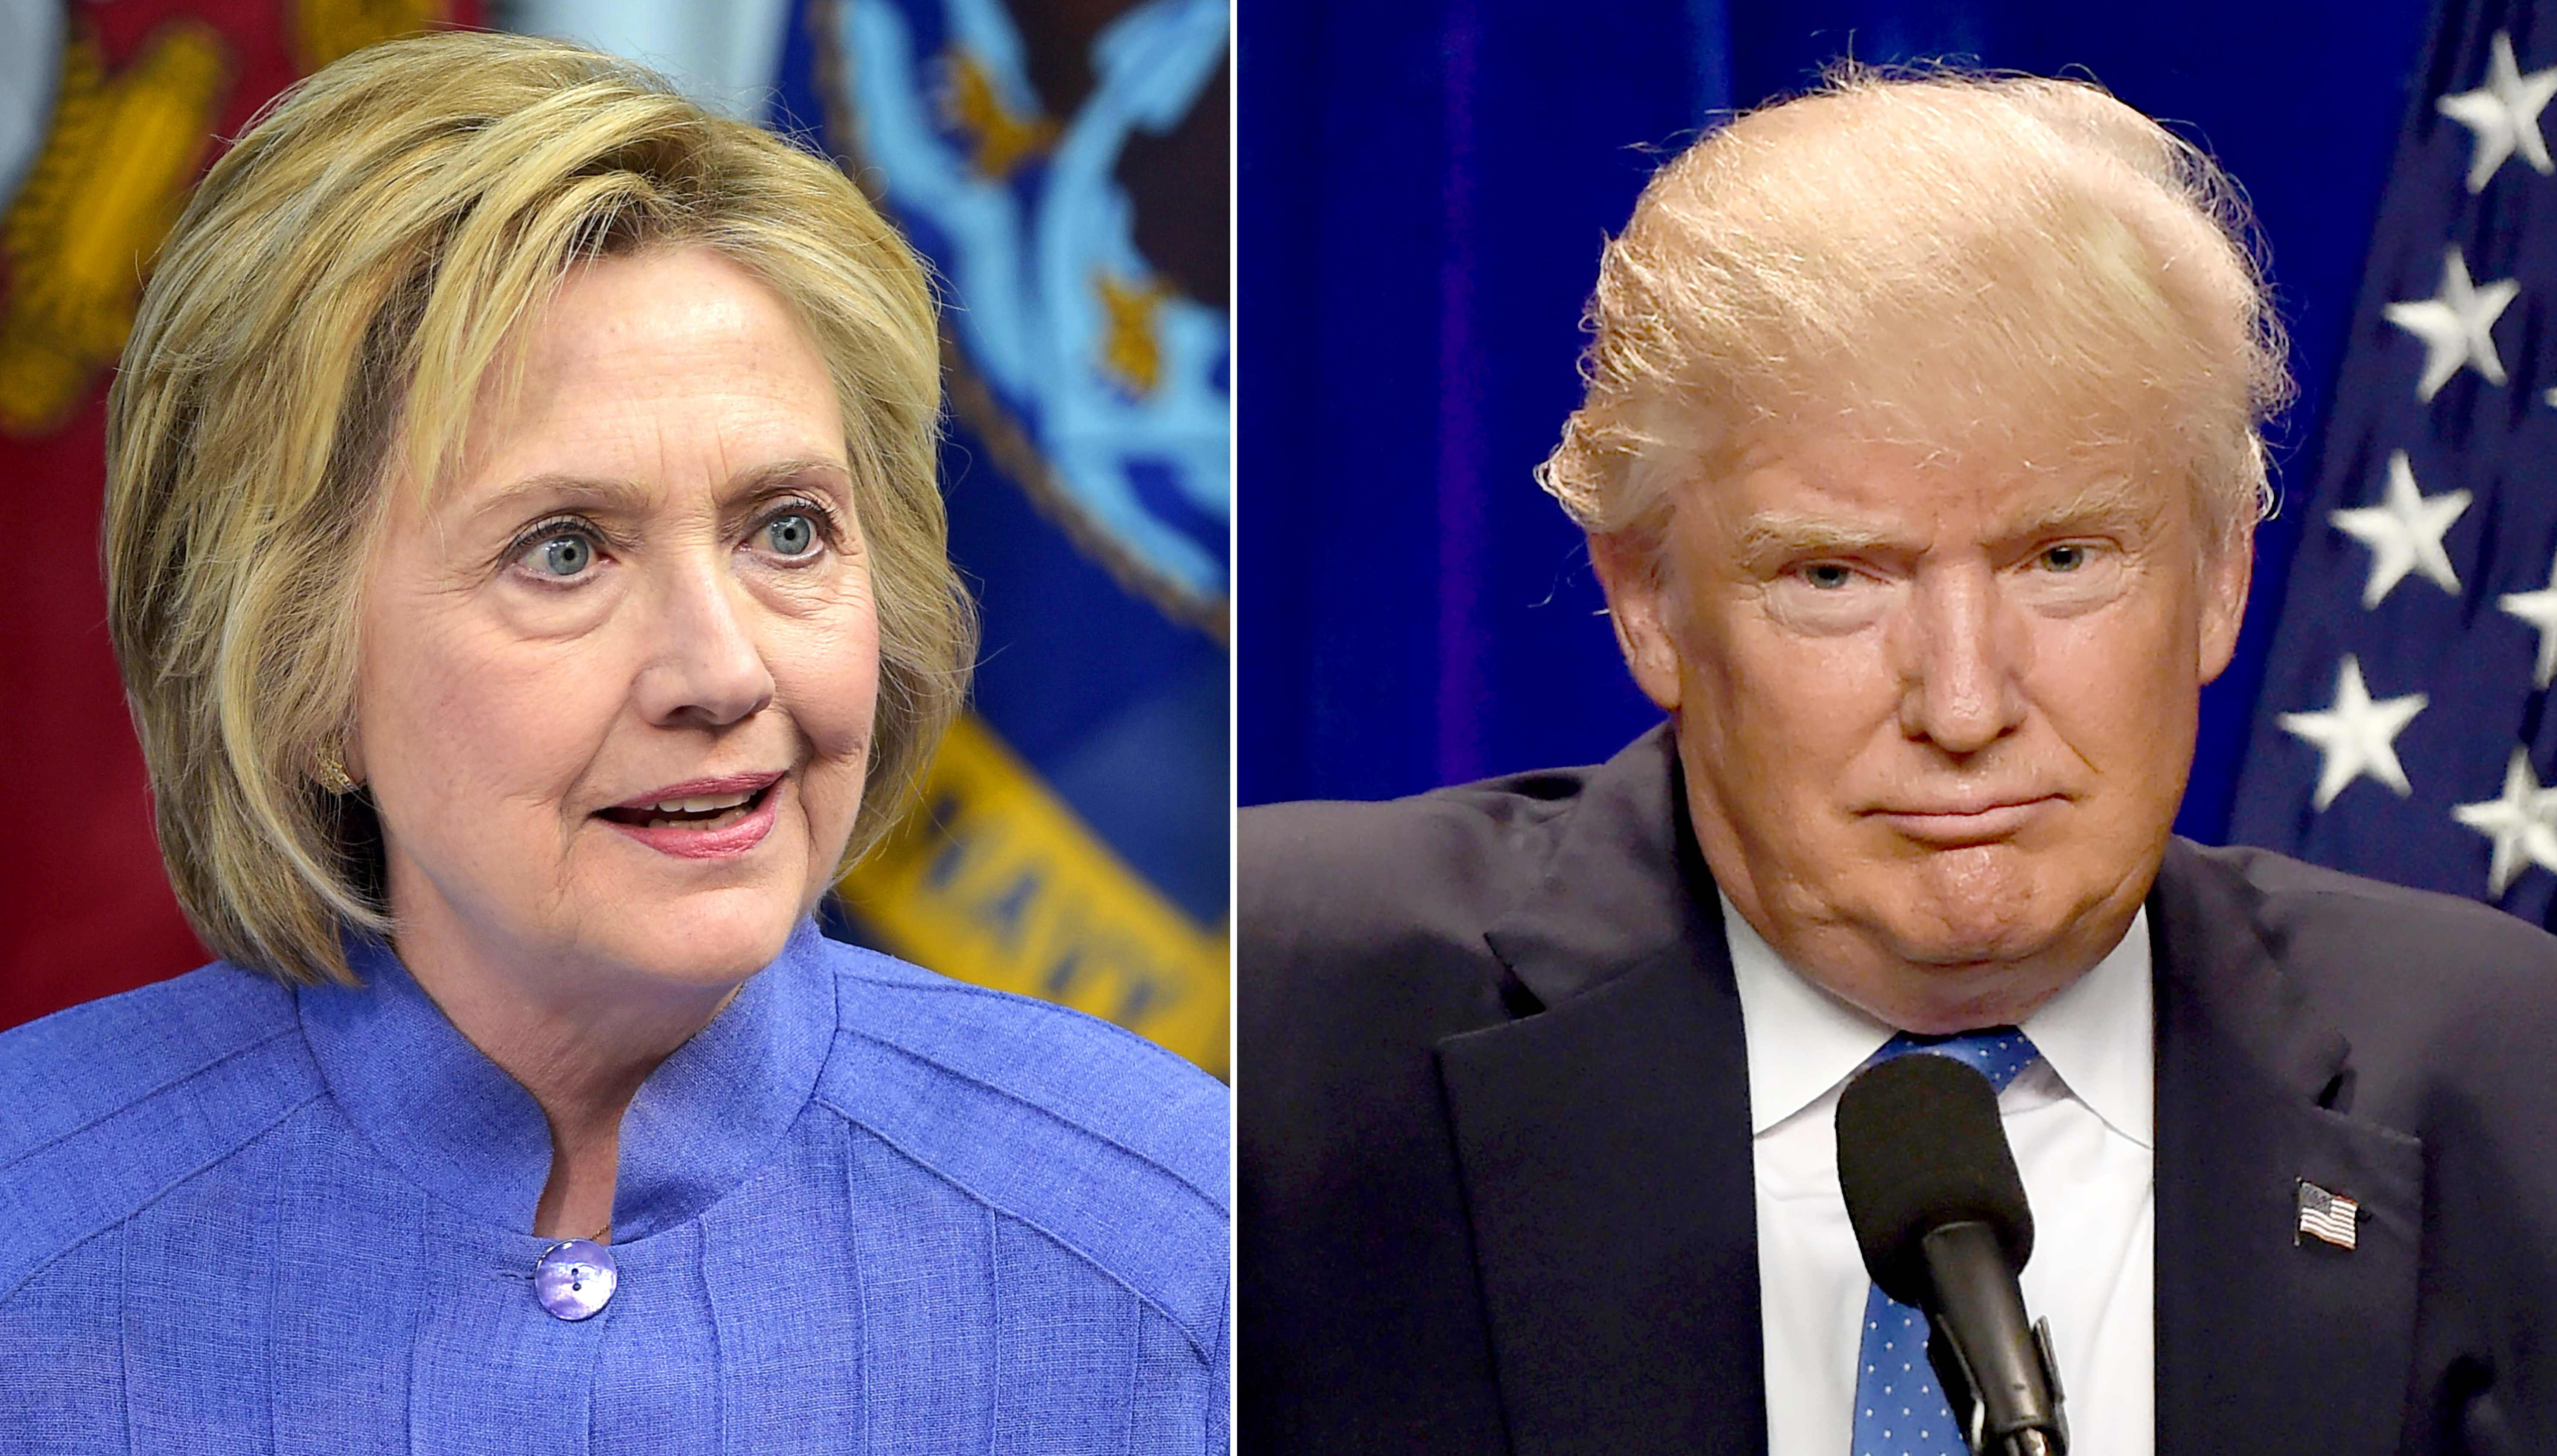 """(FILES) This combination of file photos shows Democratic presidential candidate Hillary Clinton(L)on June 15, 2016 and presumptive Republican presidential nominee Donald Trump on June 13, 2016.  Hillary Clinton on July 31, 2016 sharply criticized Donald Trump over his """"absolute allegiance"""" to Russian policy aims, saying it raised both """"national security issues"""" and new doubts about his temperament. / AFP PHOTO / dskDSK/AFP/Getty Images"""